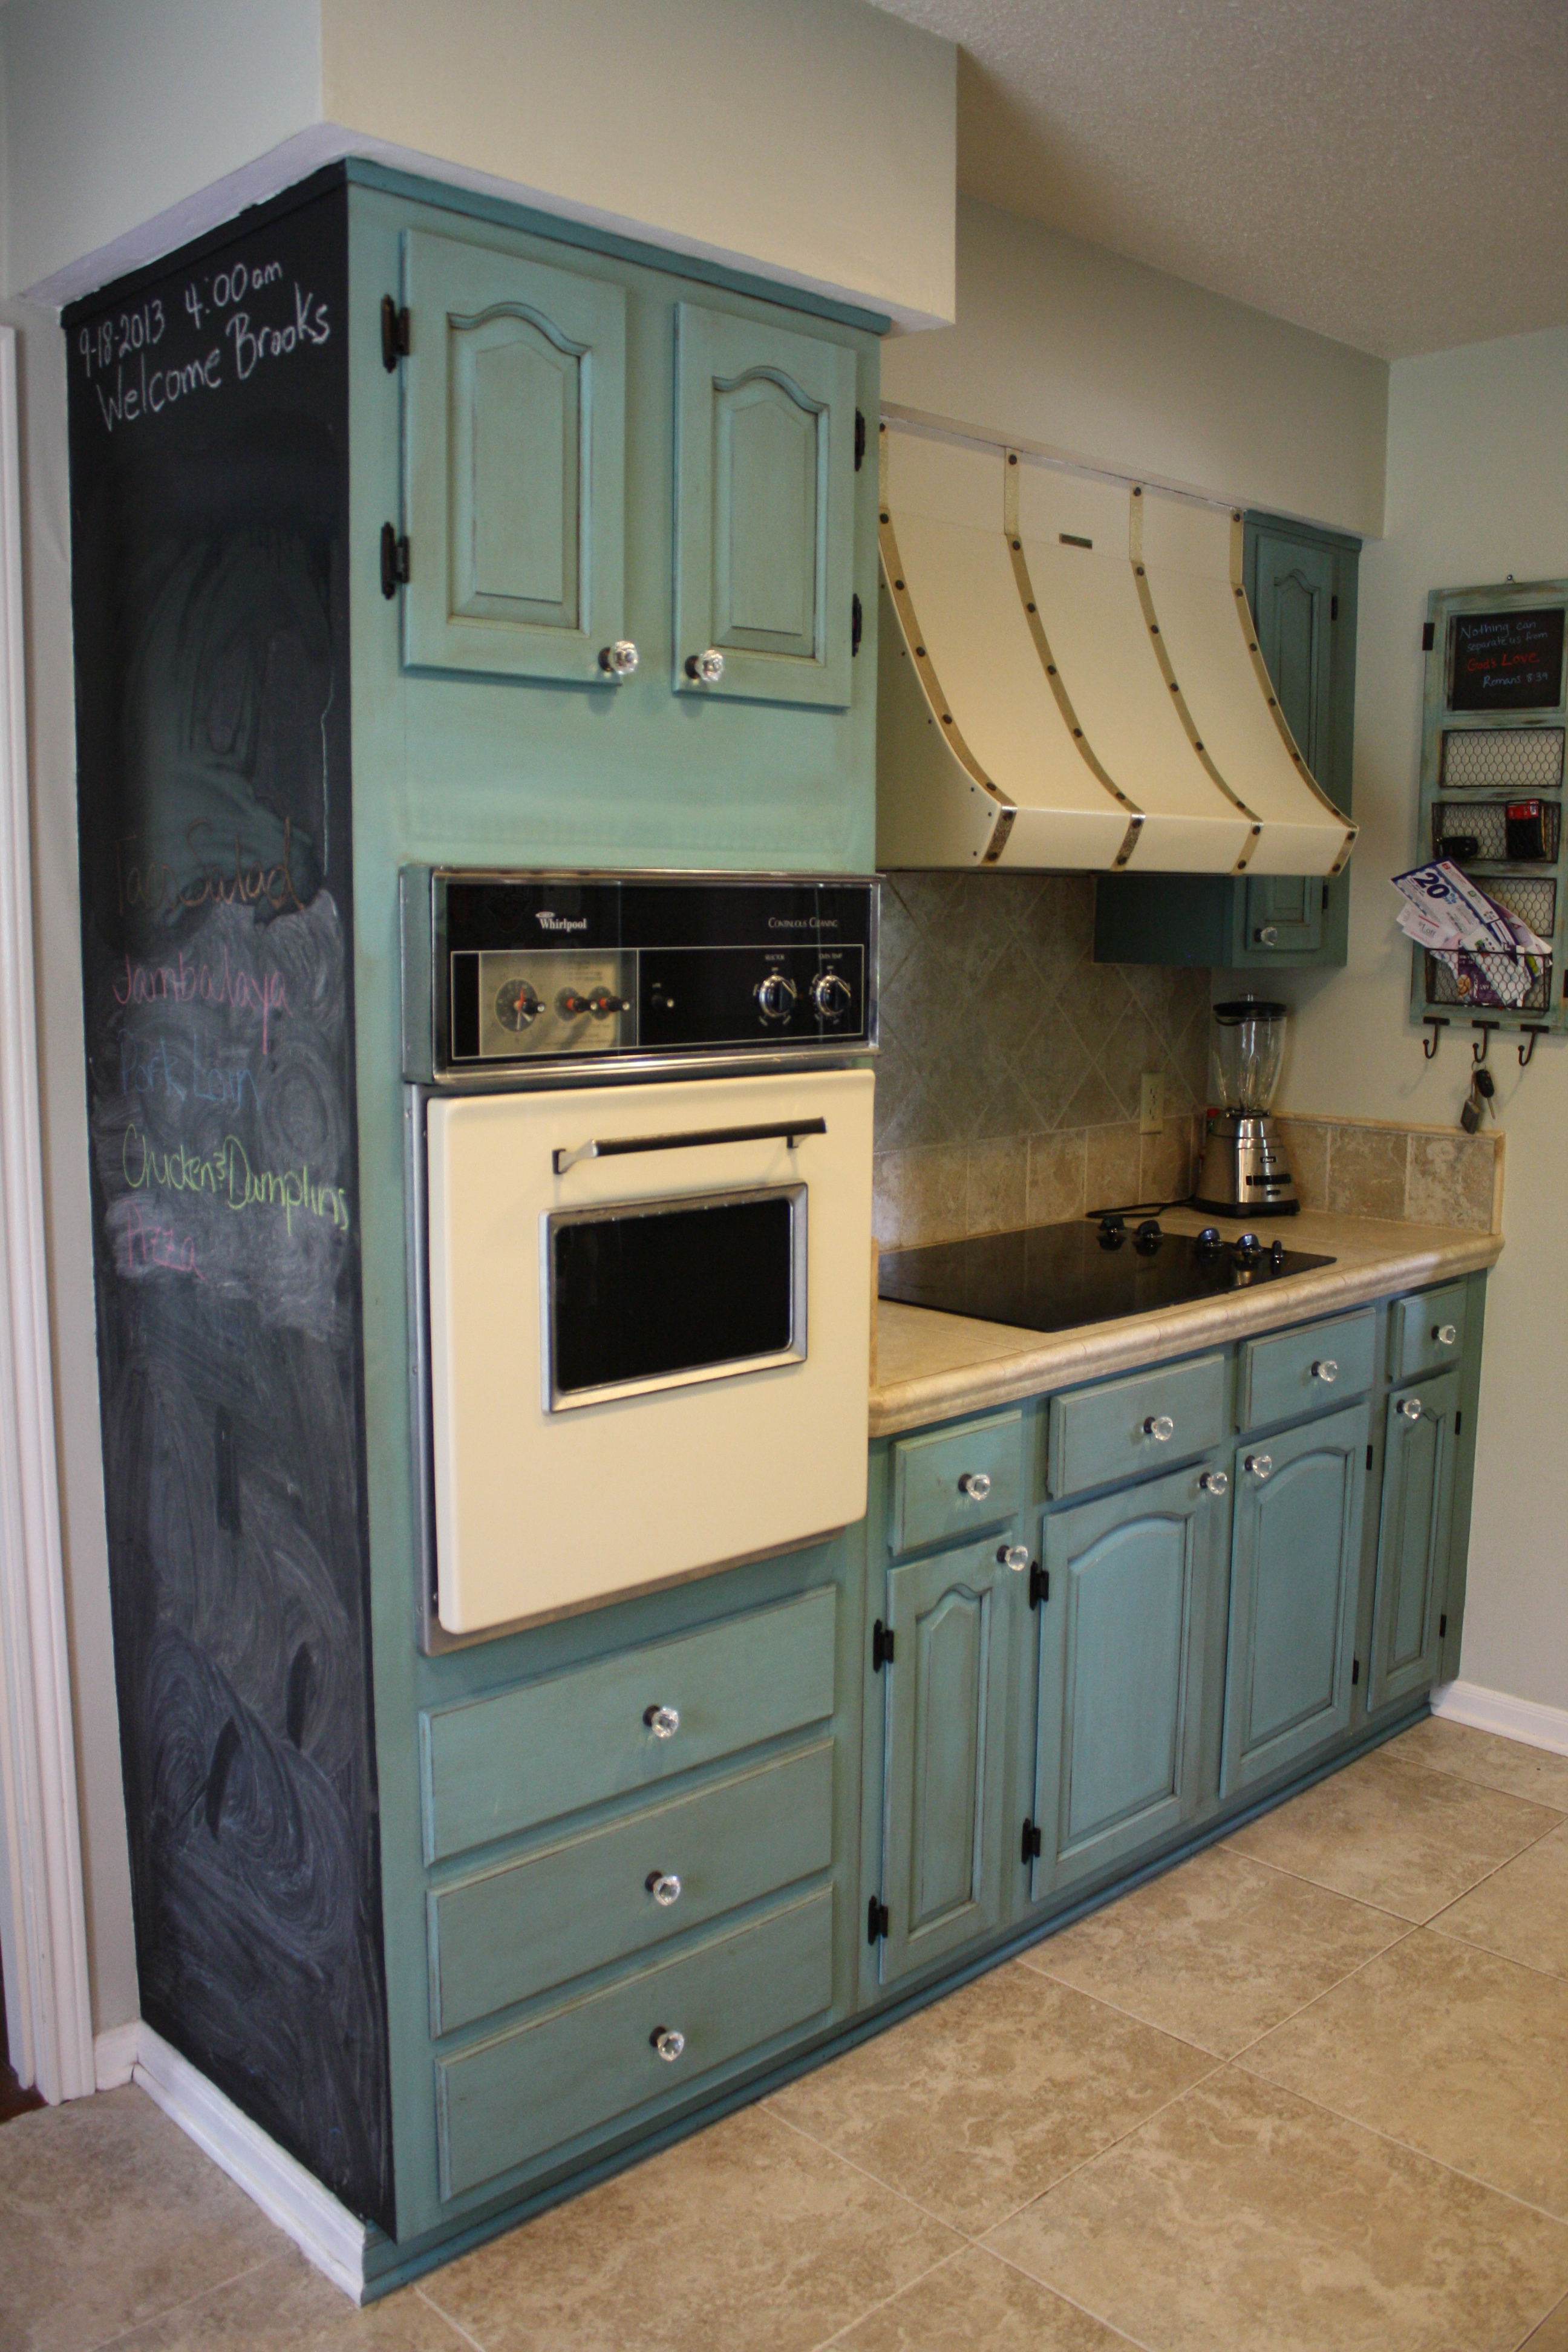 Images Of Painted Kitchen Cabinets Painting Kitchen Cabinets With Annie Sloan Chalk Paint